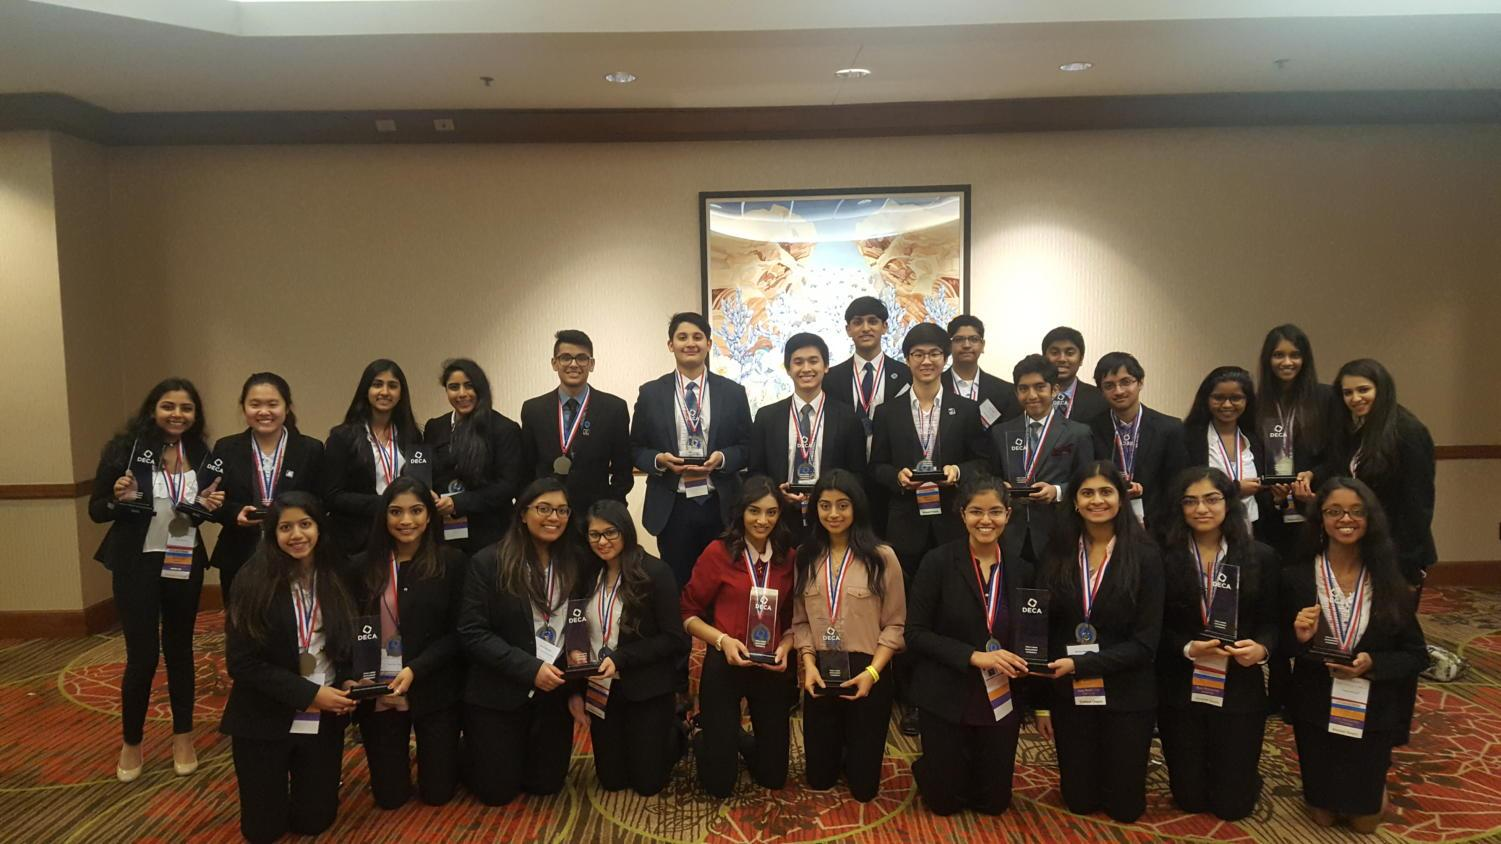 On April 22-25, the Coppell High School DECA chapter had a record number of 28 students advance to the annual International Career Development Conference (ICDC) at Mercedes-Benz Stadium in Atlanta. They brought back a top 10 finalist and 13 competitors with qualifying scores for finals.